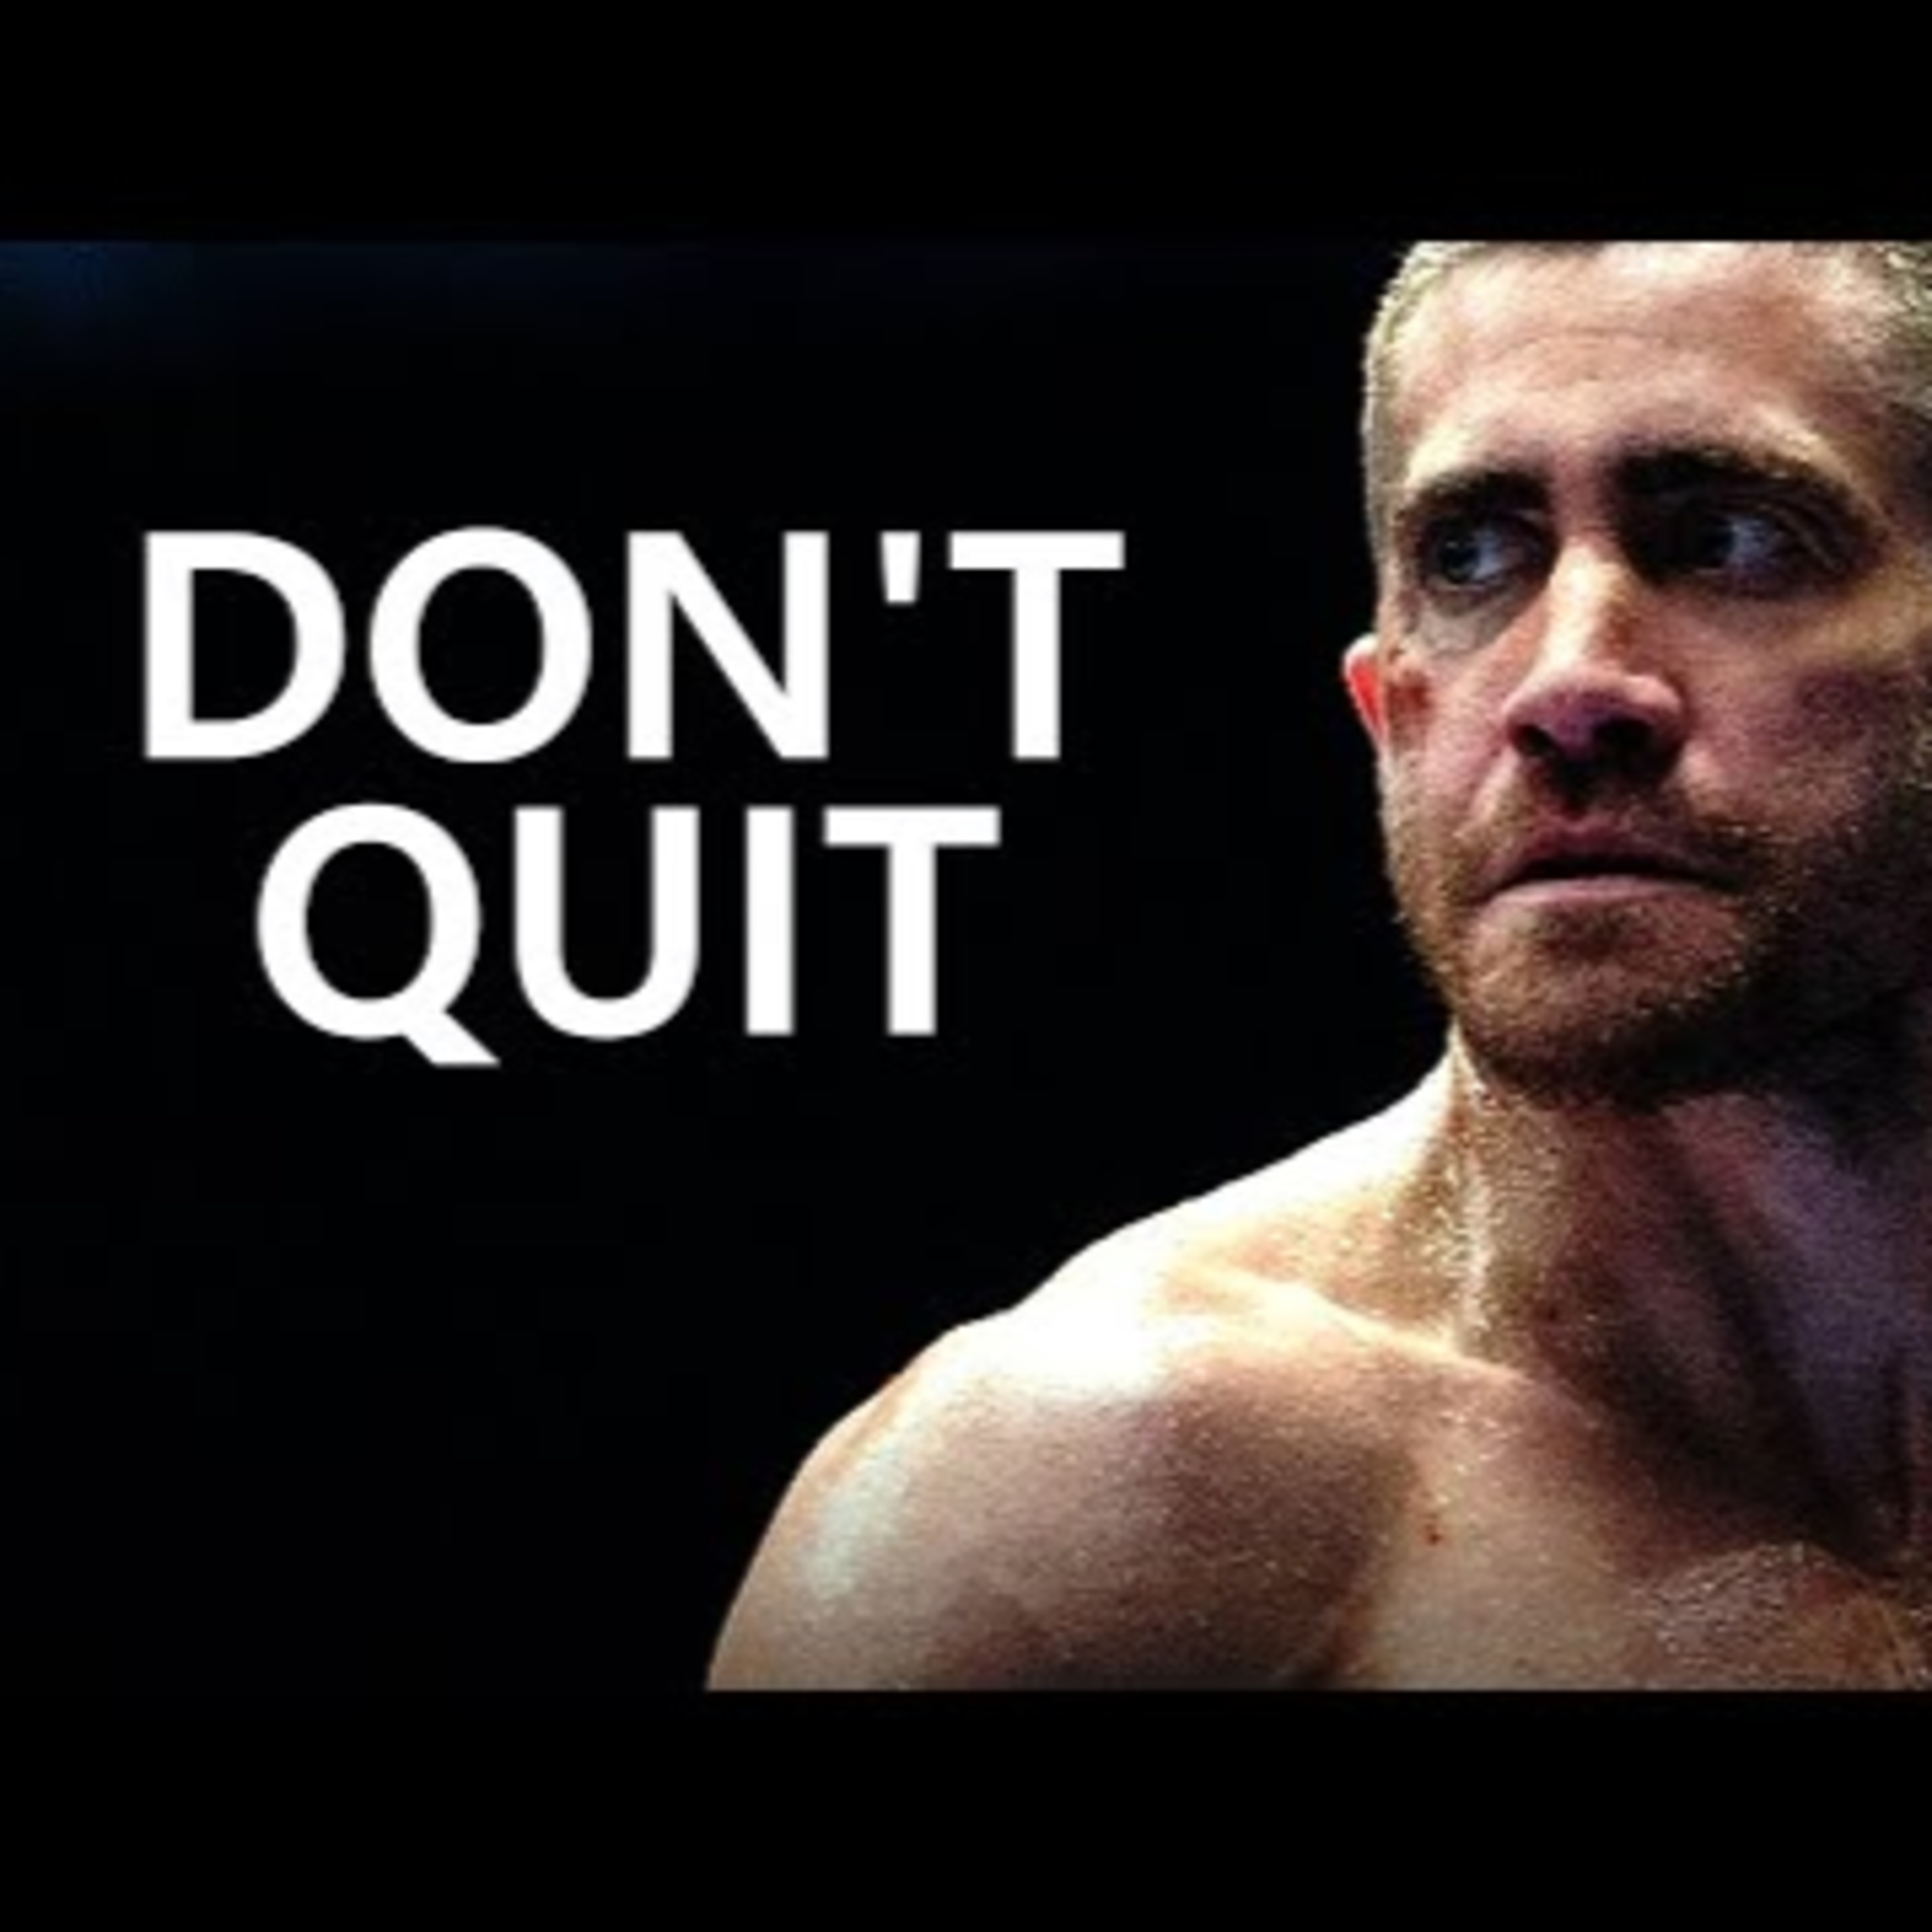 Motivational Audio   I'VE COME TOO FAR TO QUIT - Motivational Workout Speech